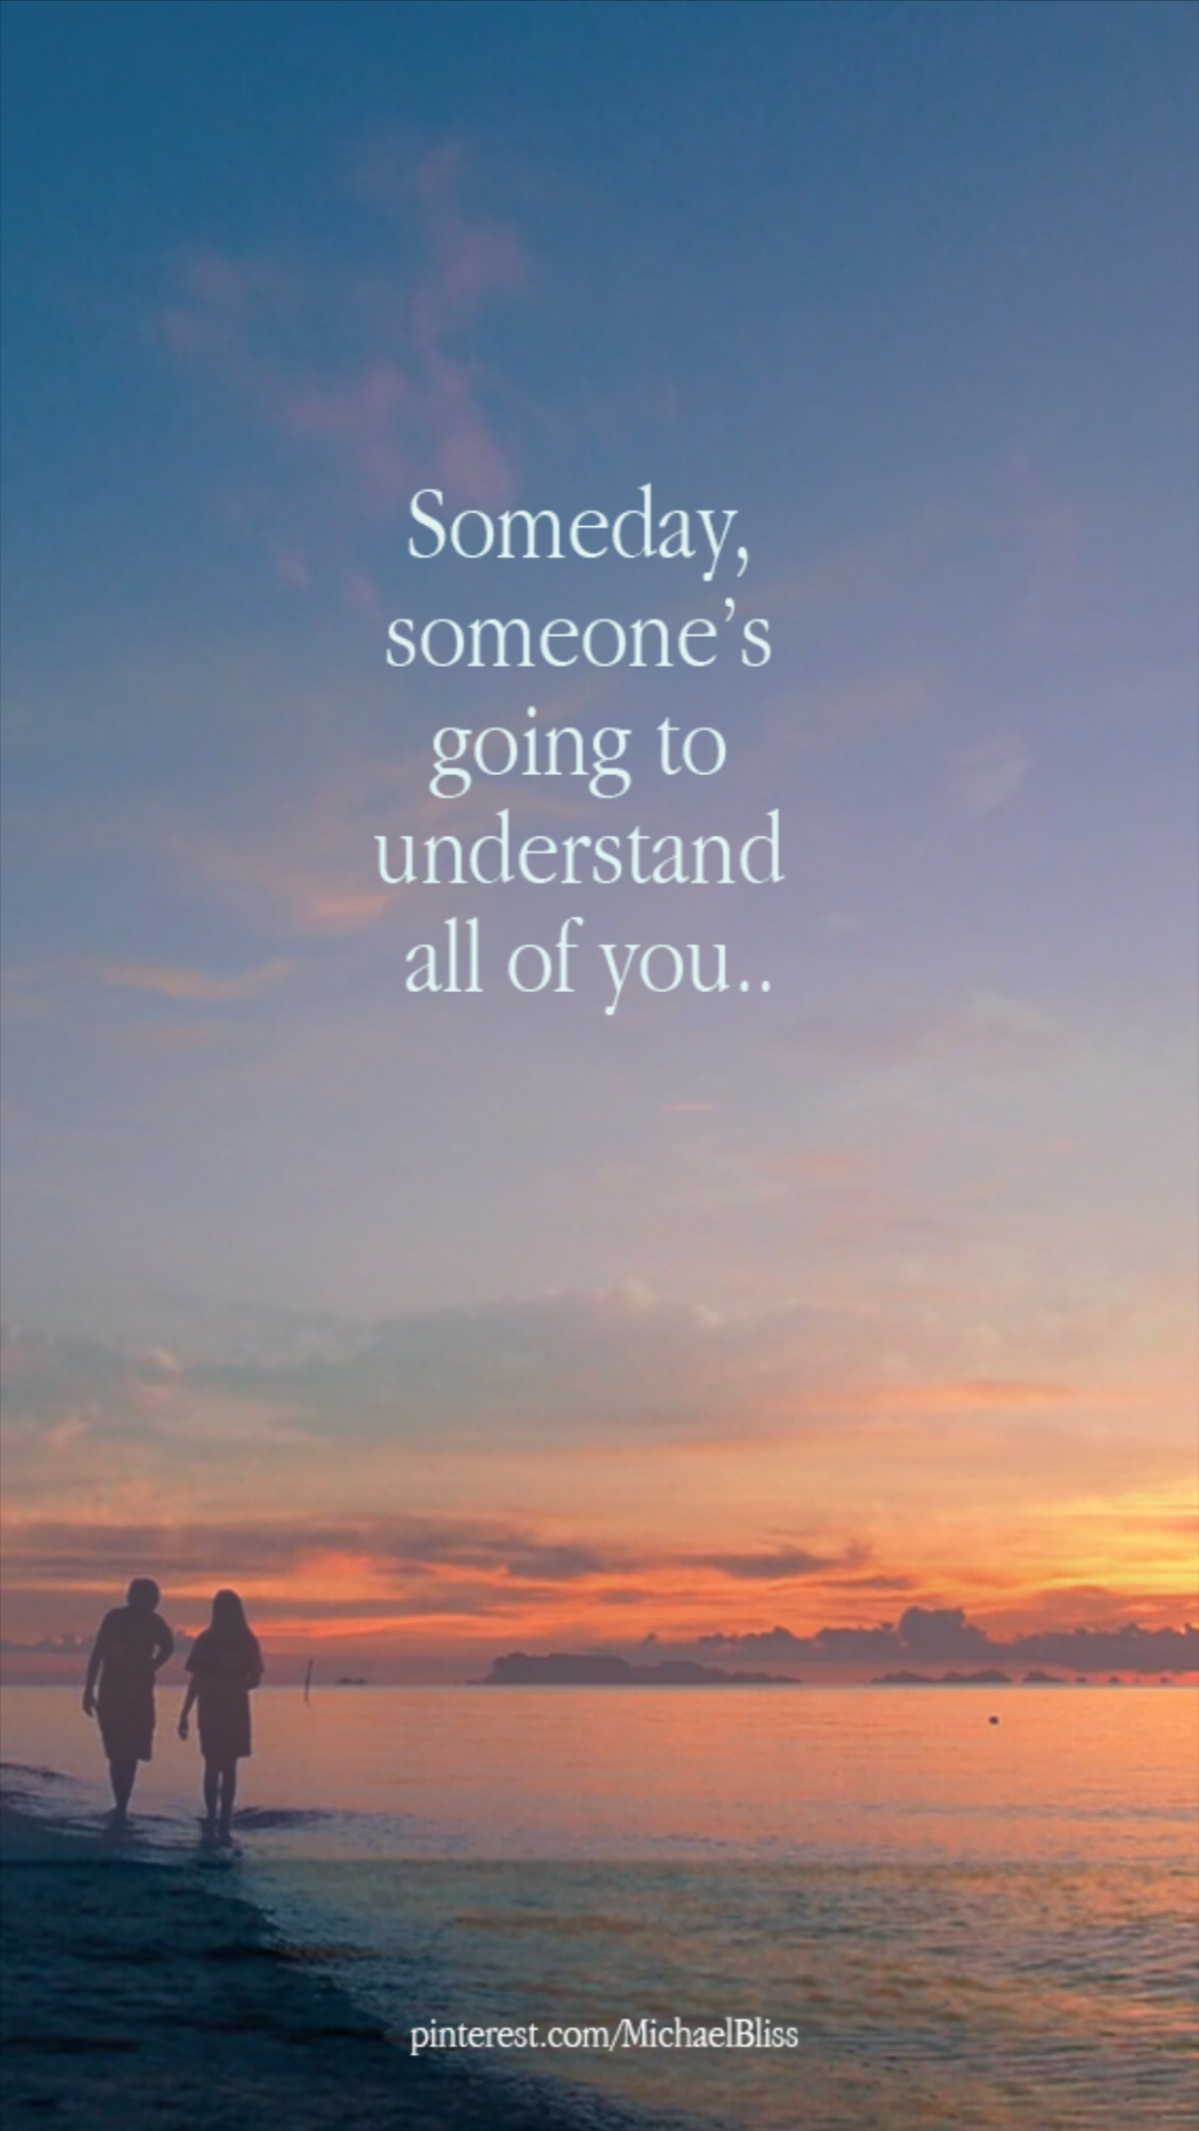 Someday, someone's going to understand all of you